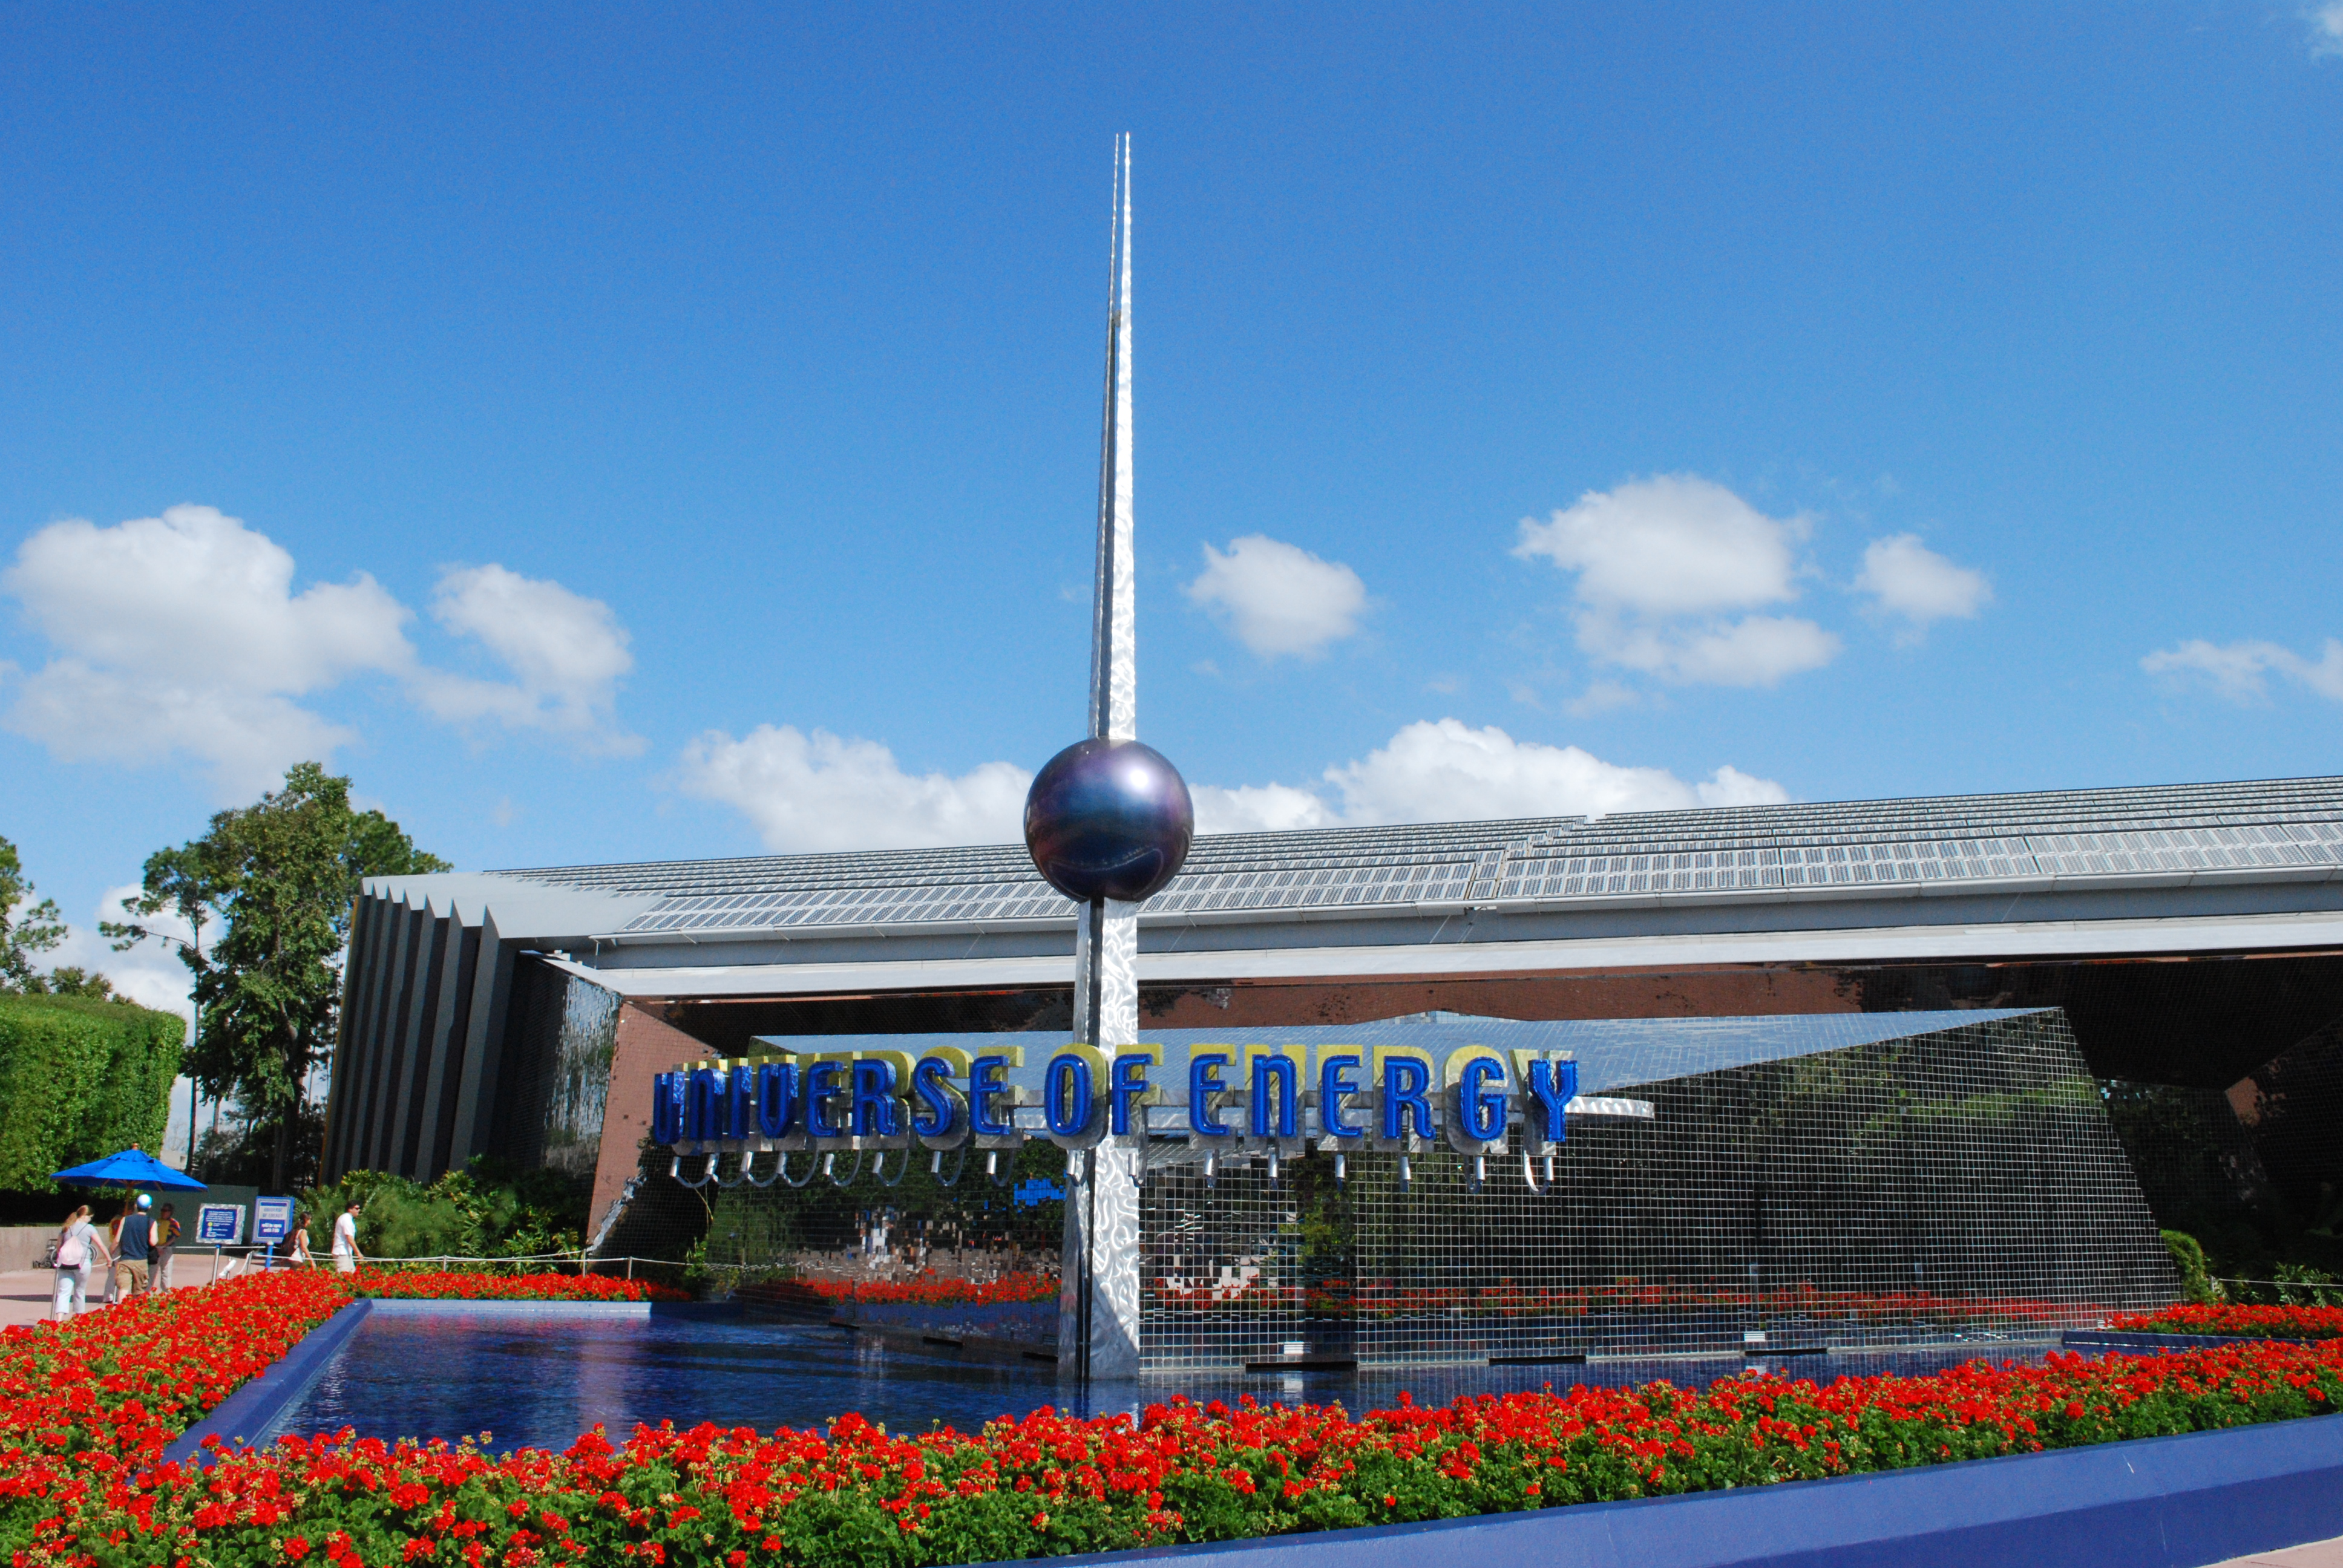 World of Energy, Epcot Center